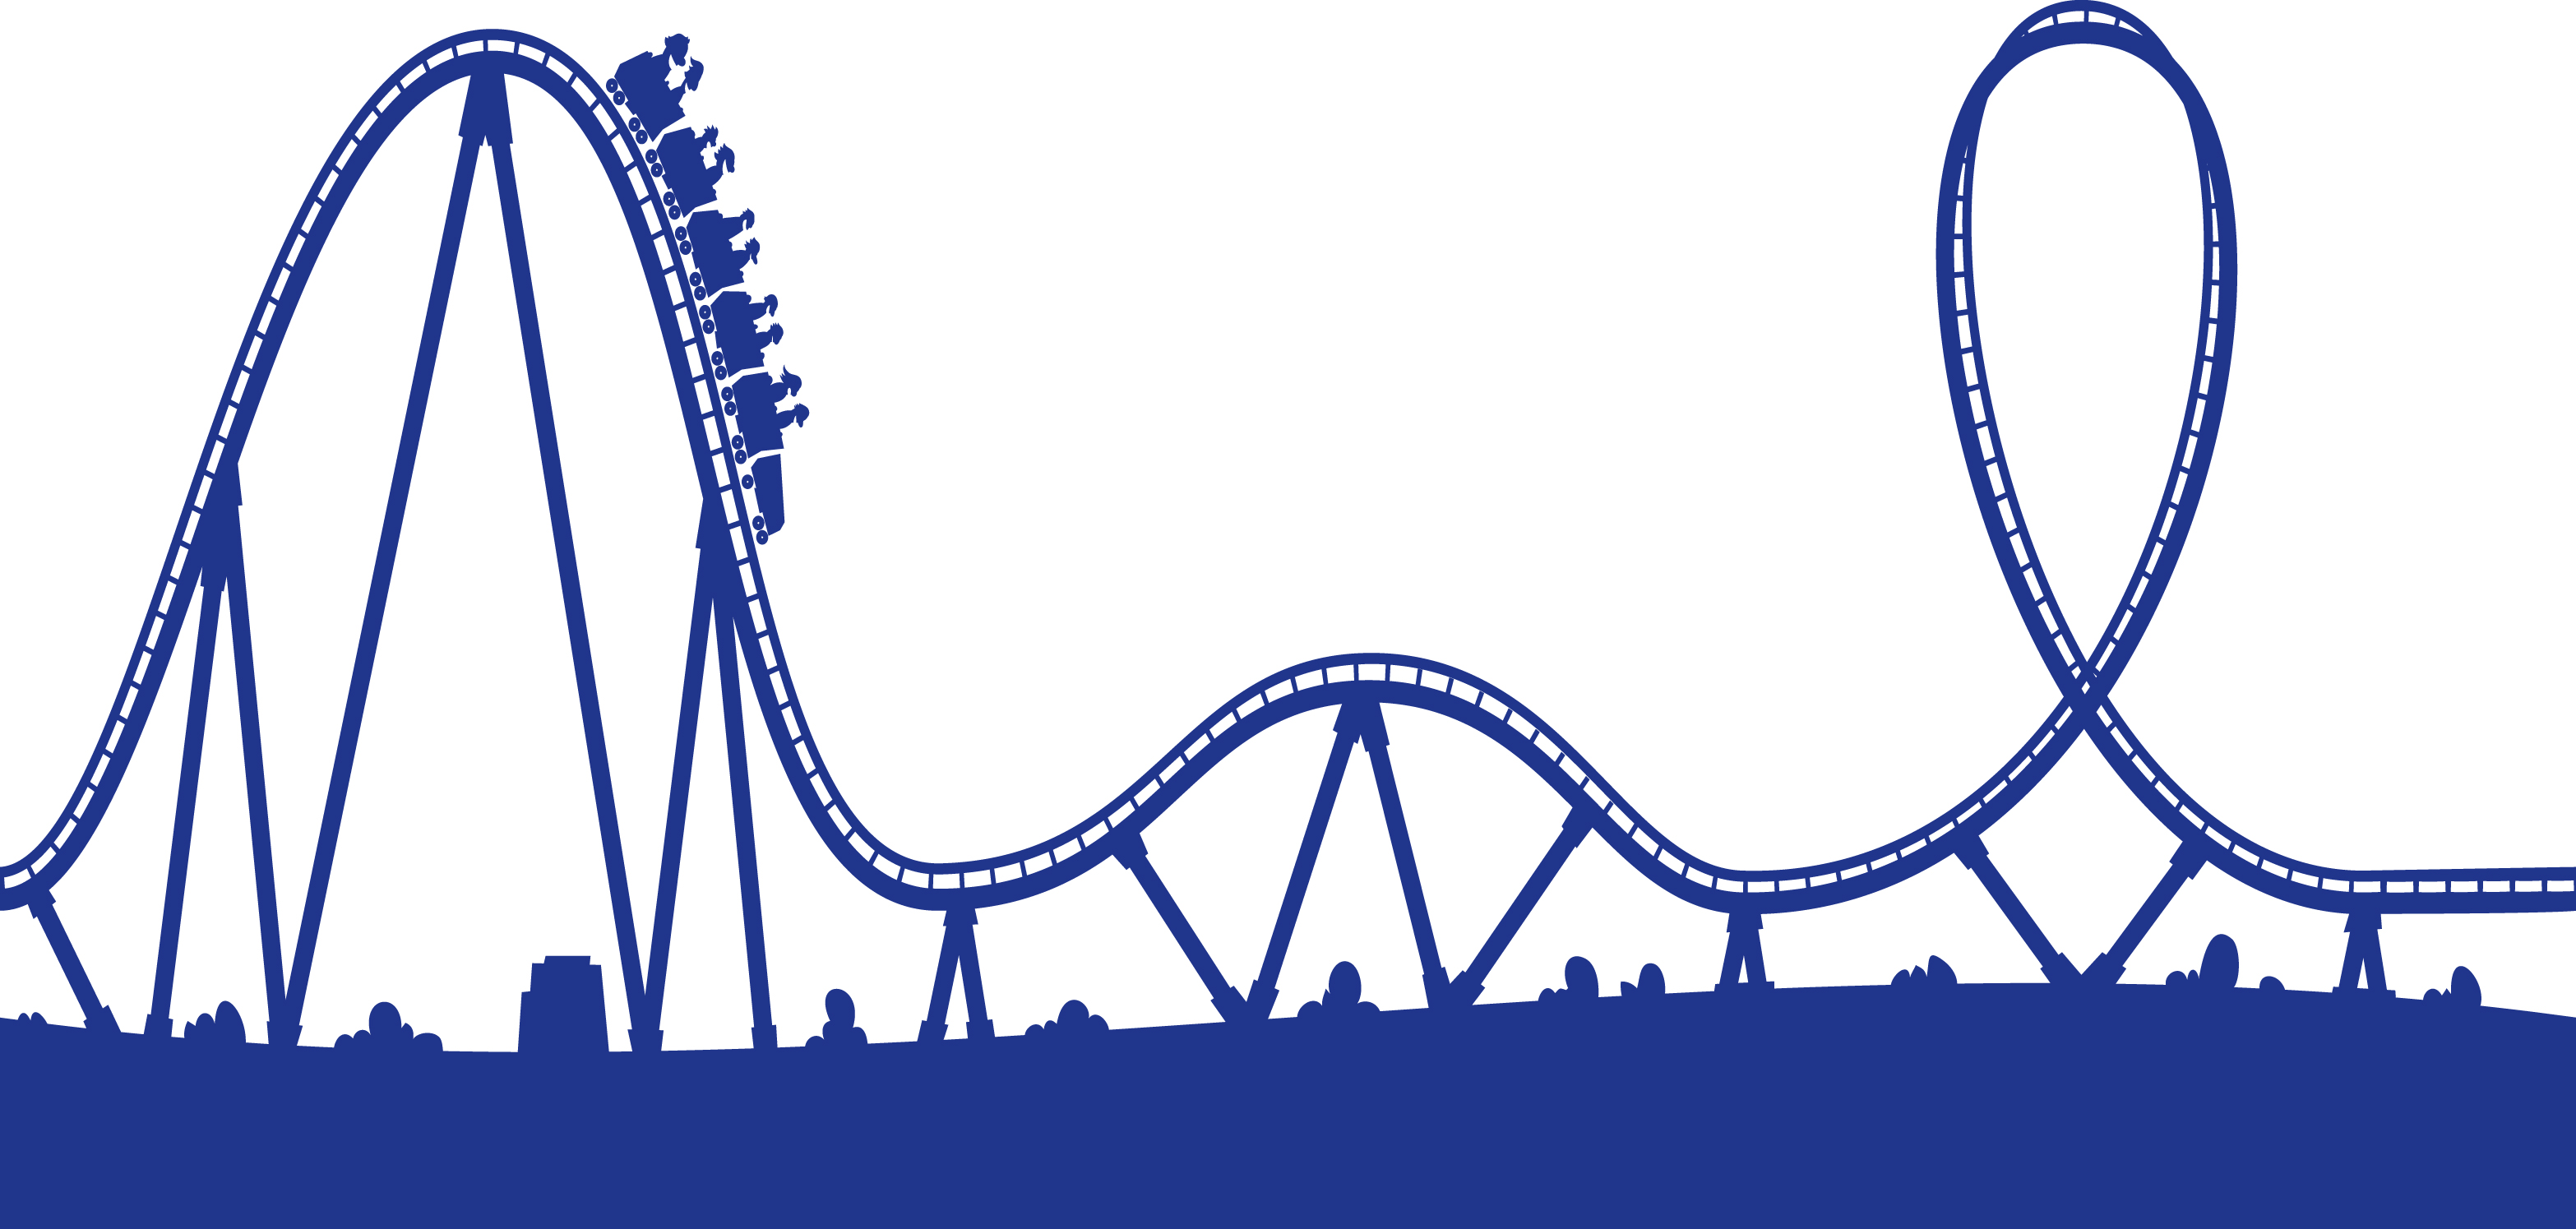 Roller Coaster Track Clipart-Roller coaster track clipart-11